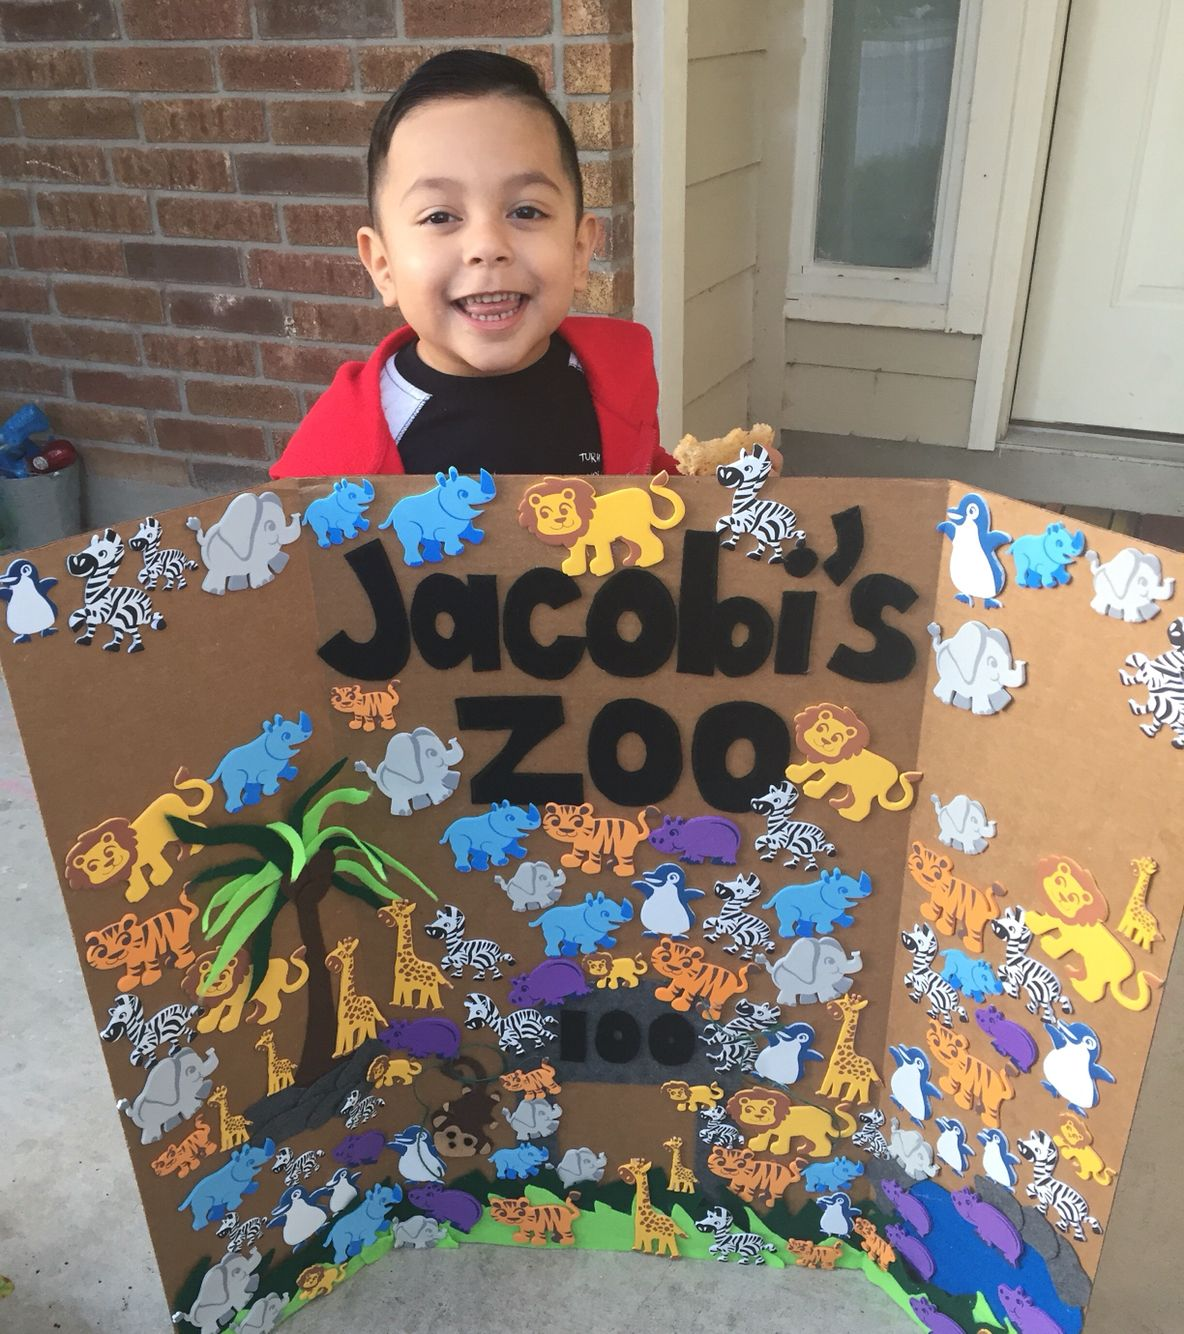 100 Days Of School Project For Boys, Zoo Animals, Arts And